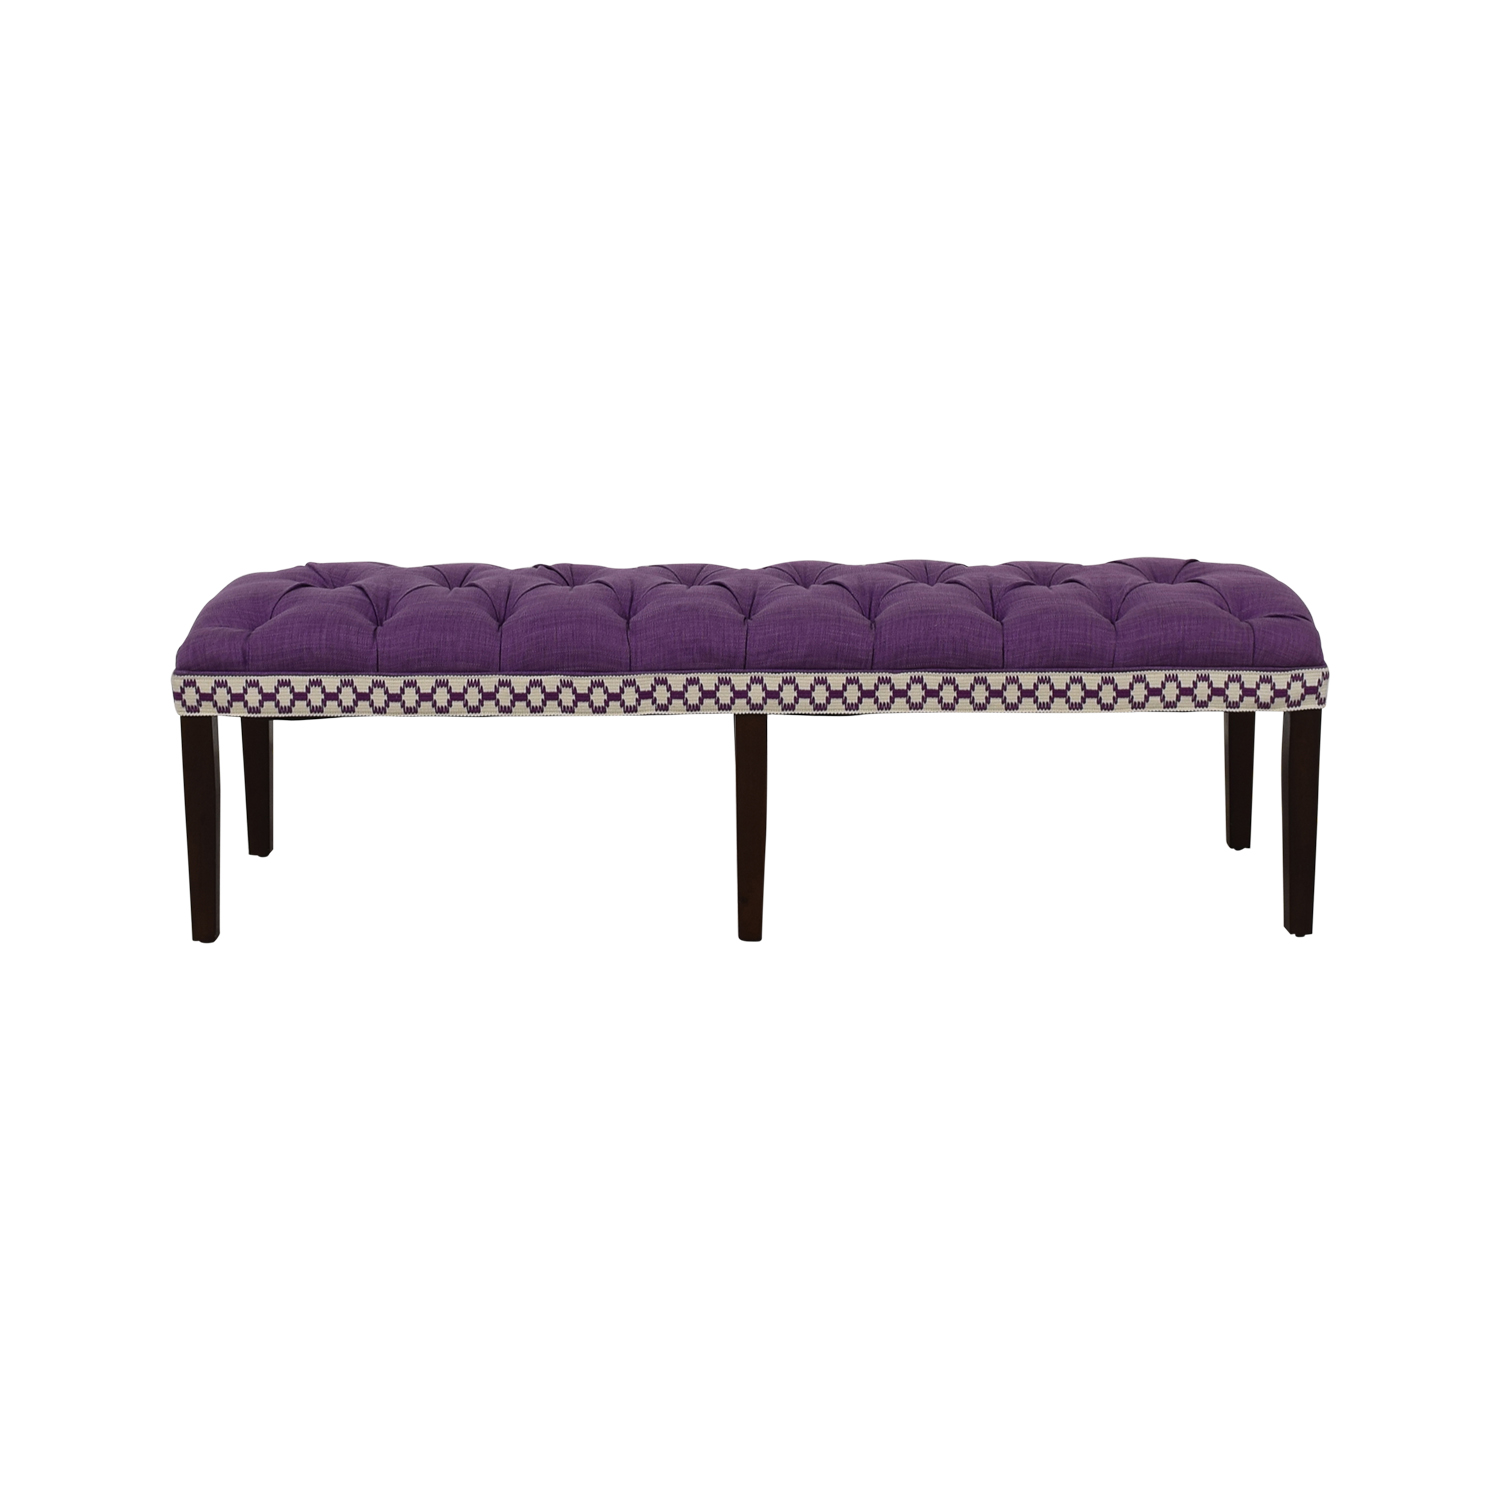 Home Goods Purple Tufted Bench Home Goods